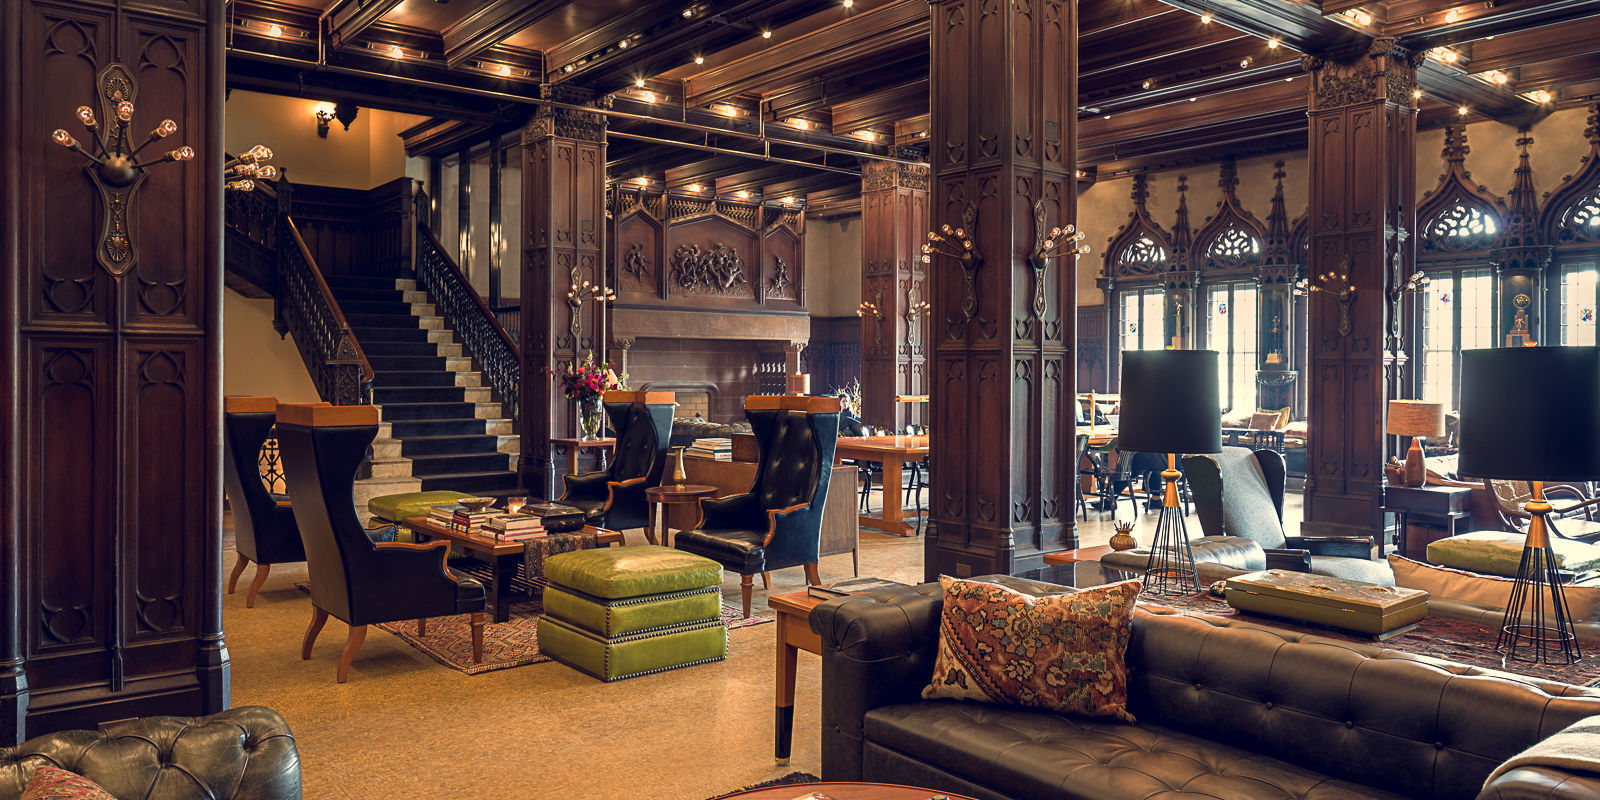 Chicago Athletic Association Hotel Photos Of The Chicago